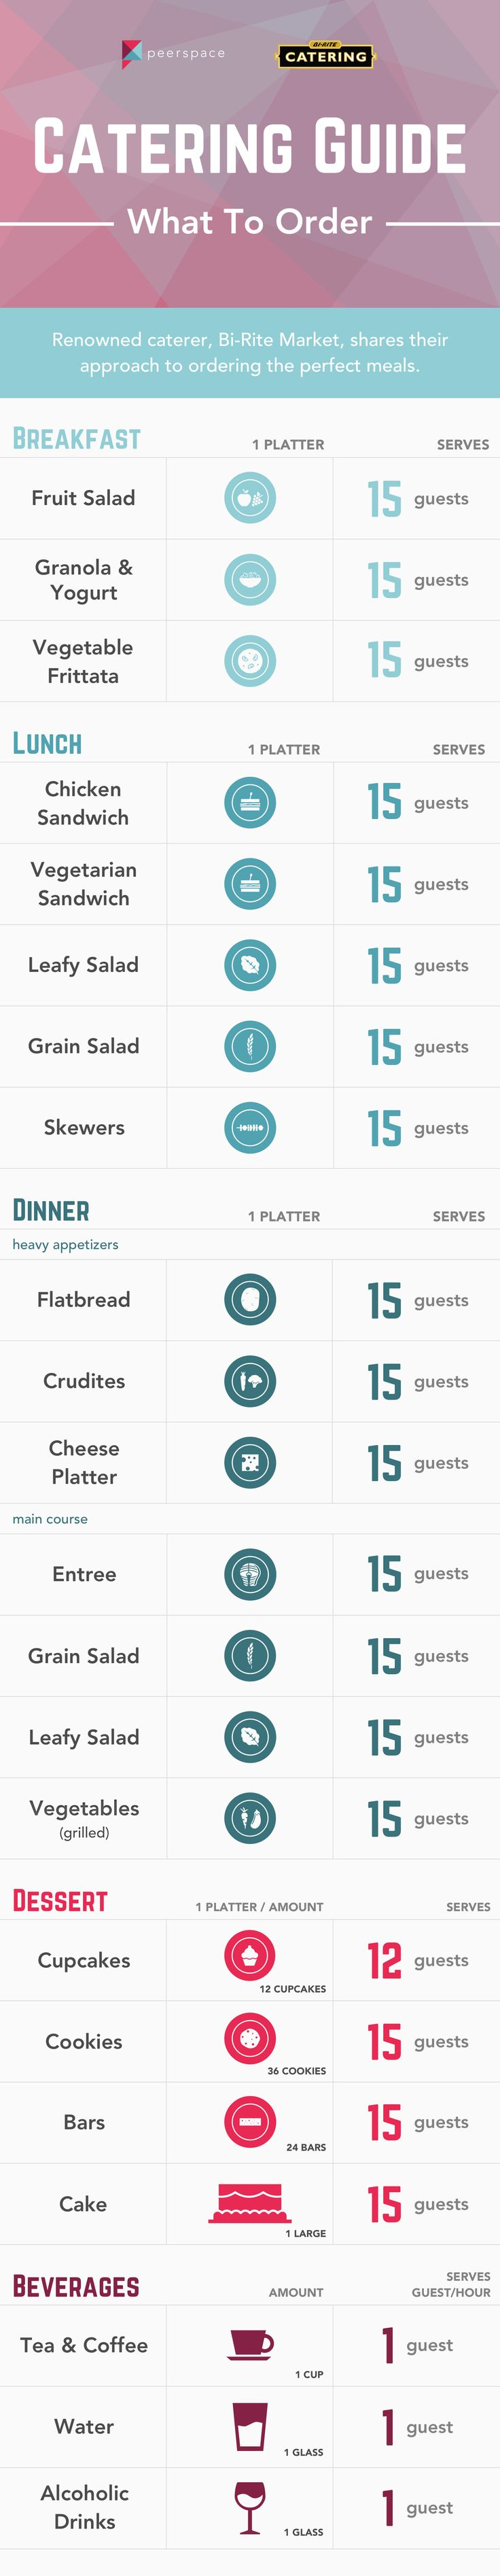 We partnered with Bi-Rite Grocery to develop a simple catering menu template. Use the infographic to quickly figure out what to order for your event.